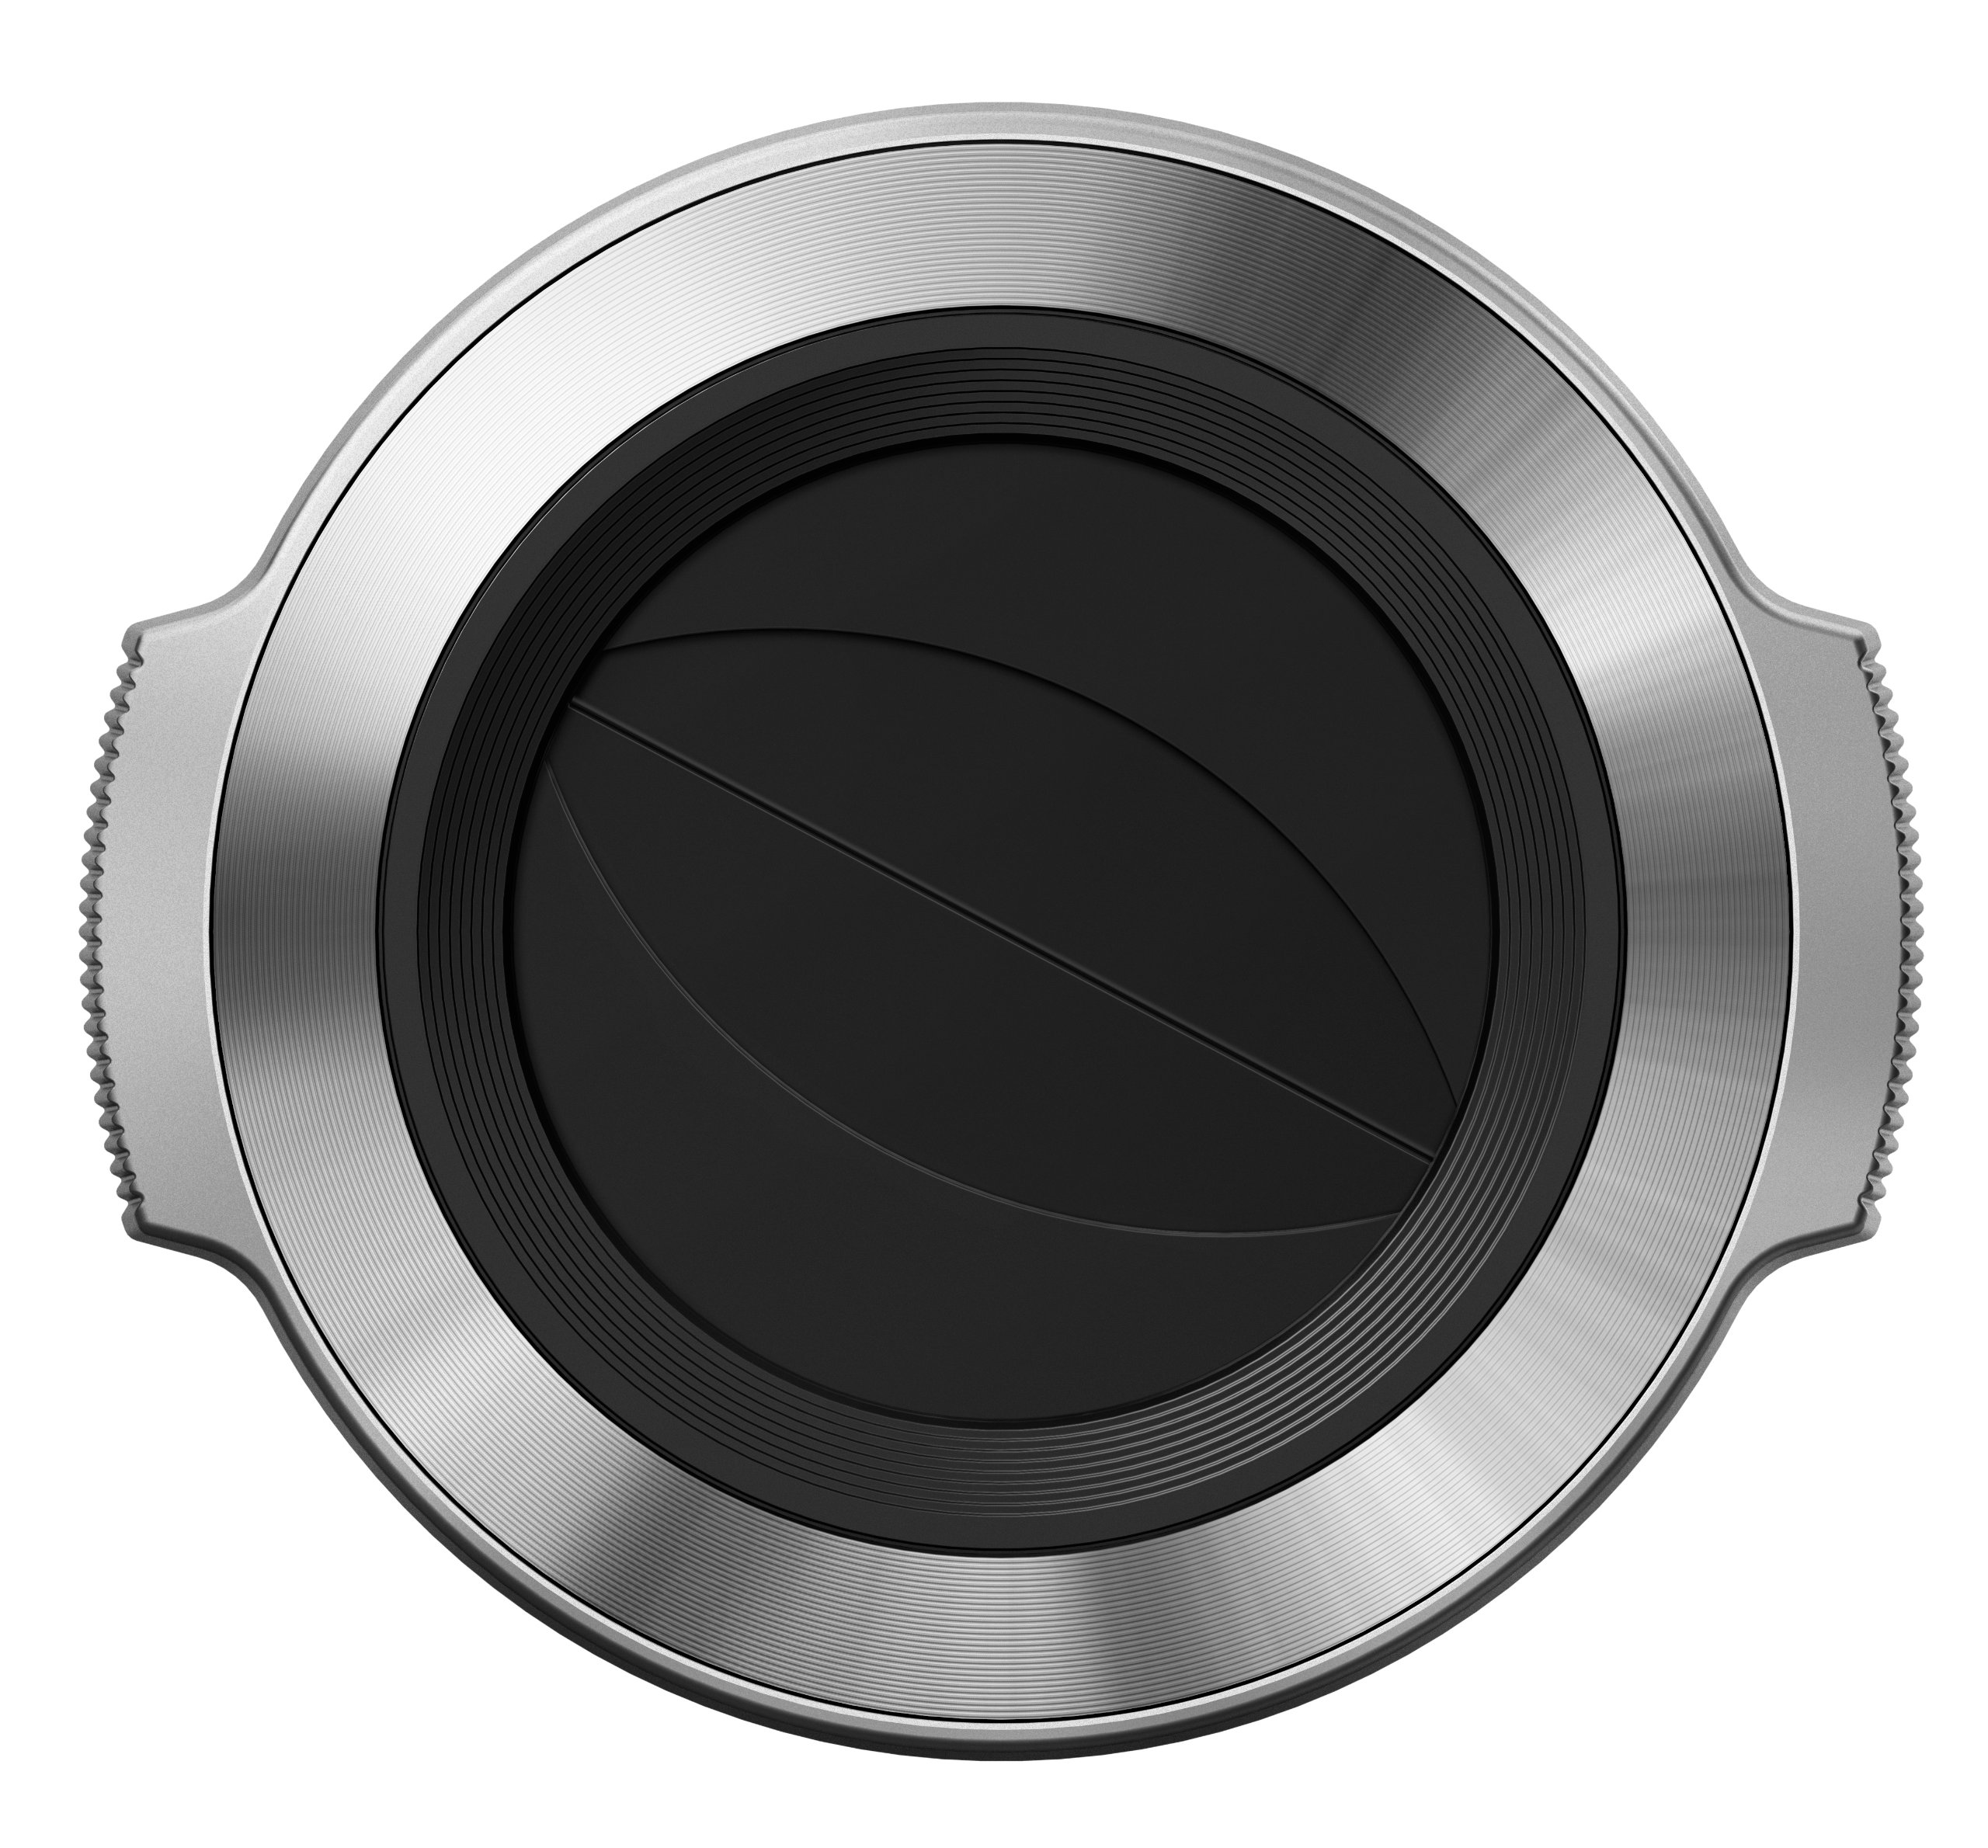 Olympus Olympus Lens Cap Auto Open LC-37C Silver for 14-42mm EZ (Silver) by Olympus